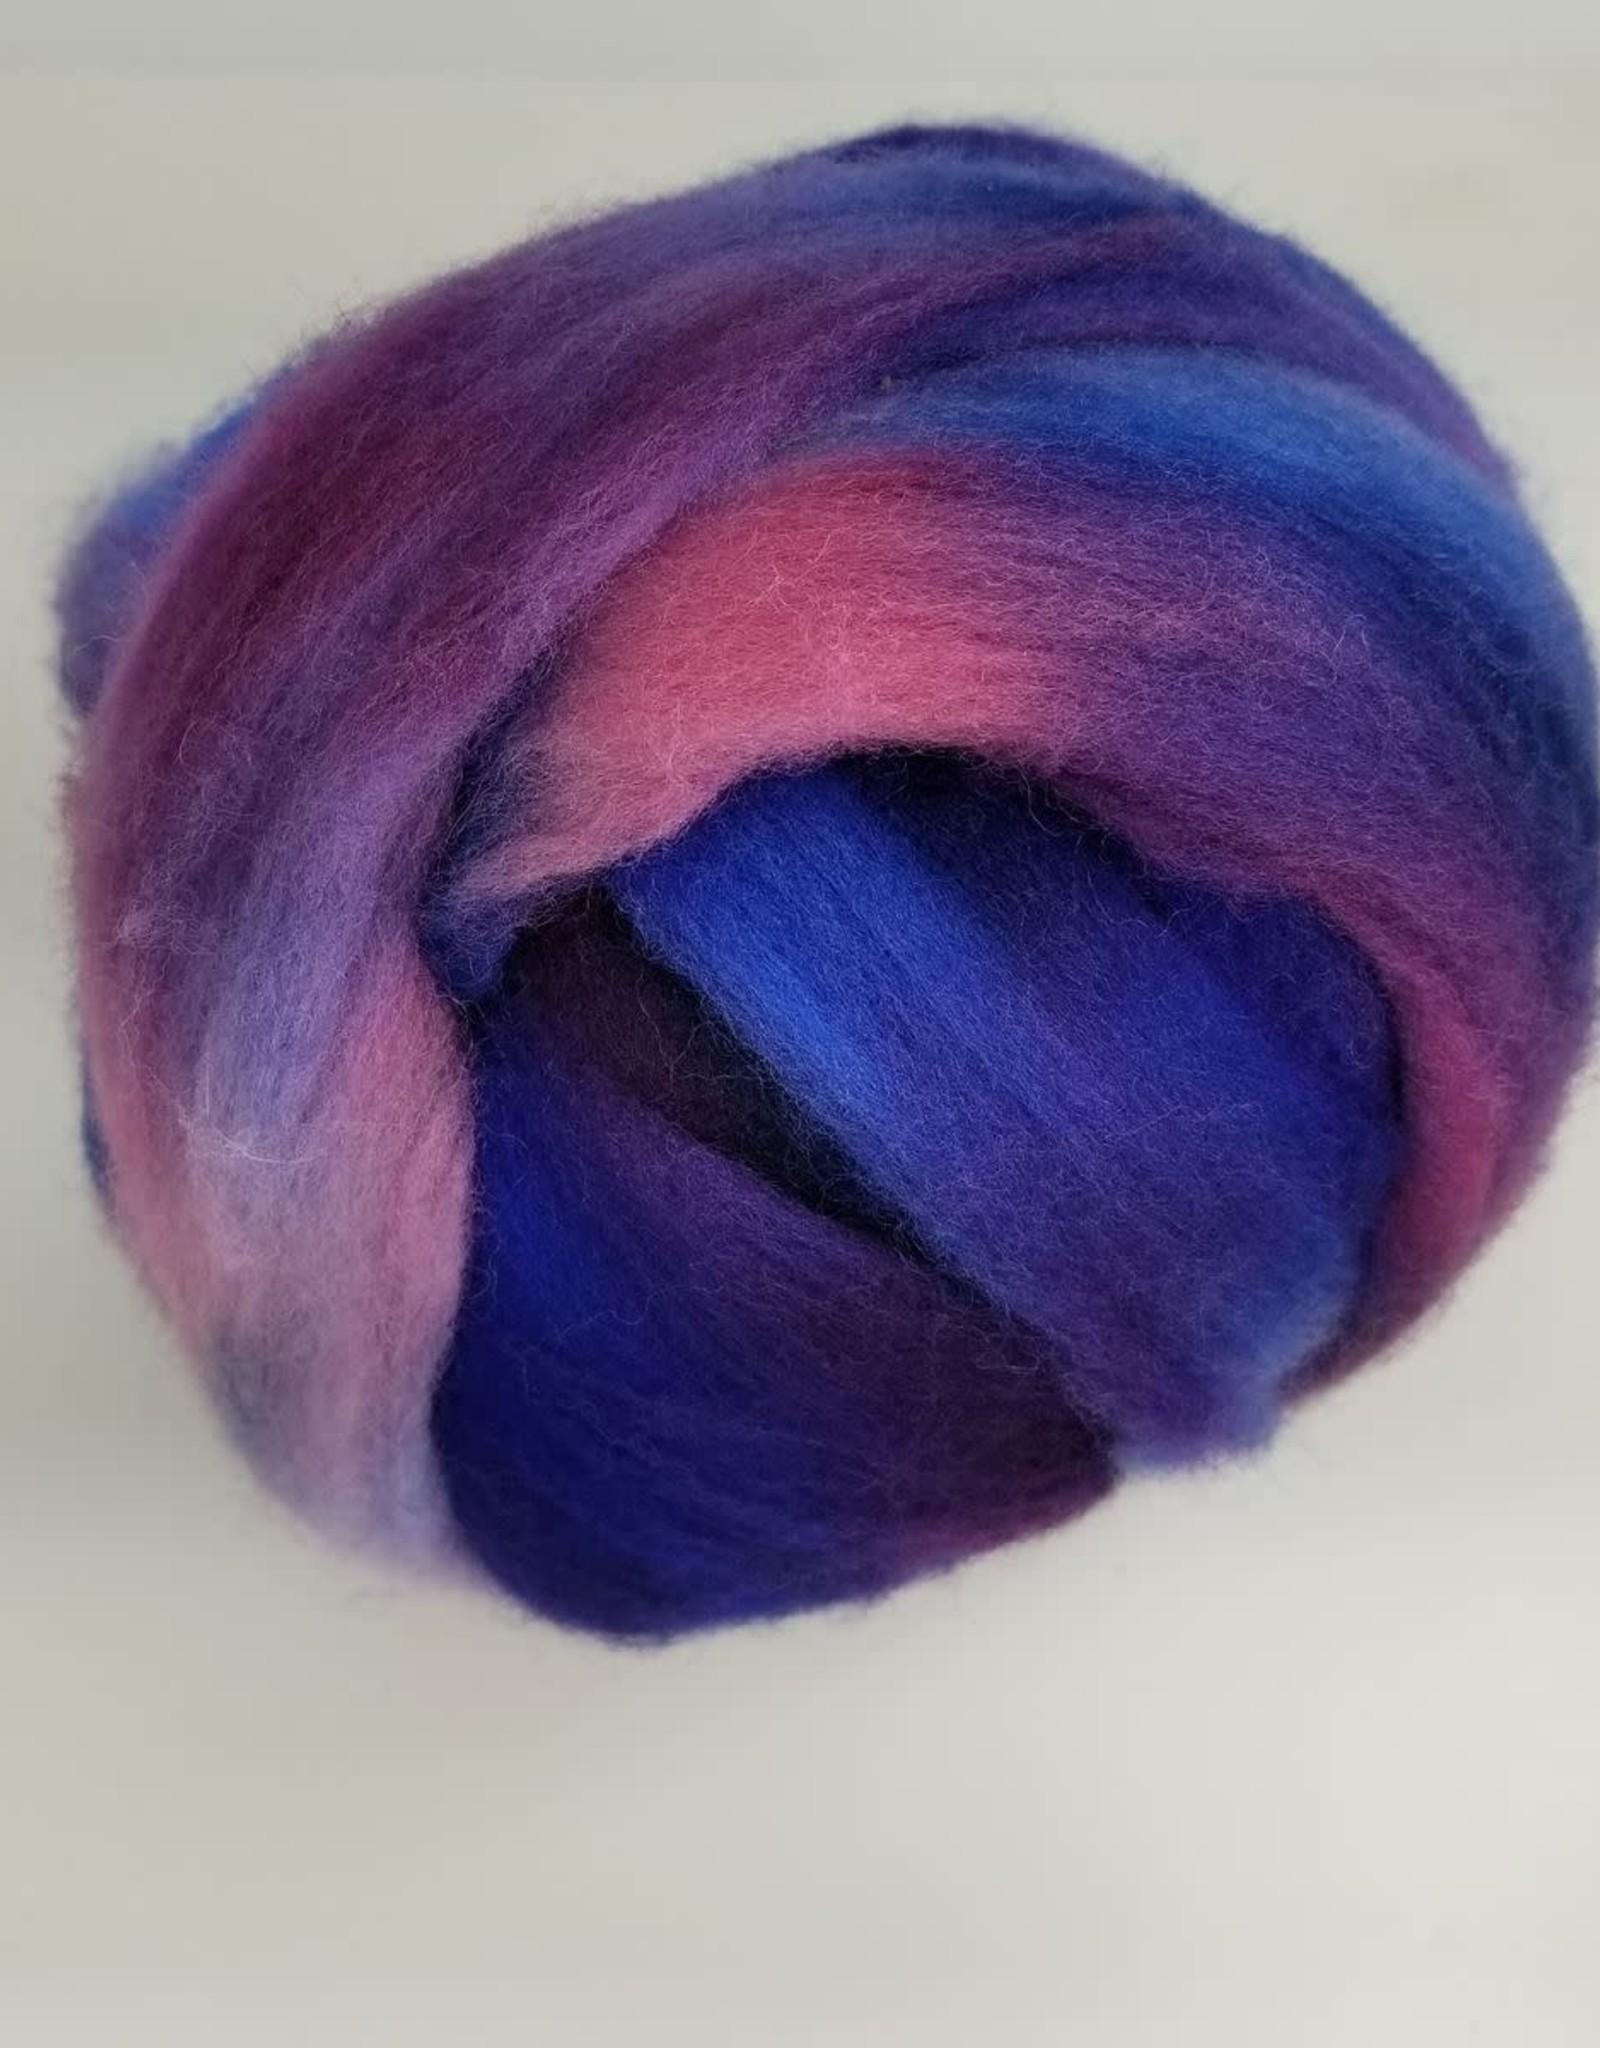 Palouse Yarn Co Hand Dyed Fiber 4 oz BFL & Silk, Polwarth, or Corriedale